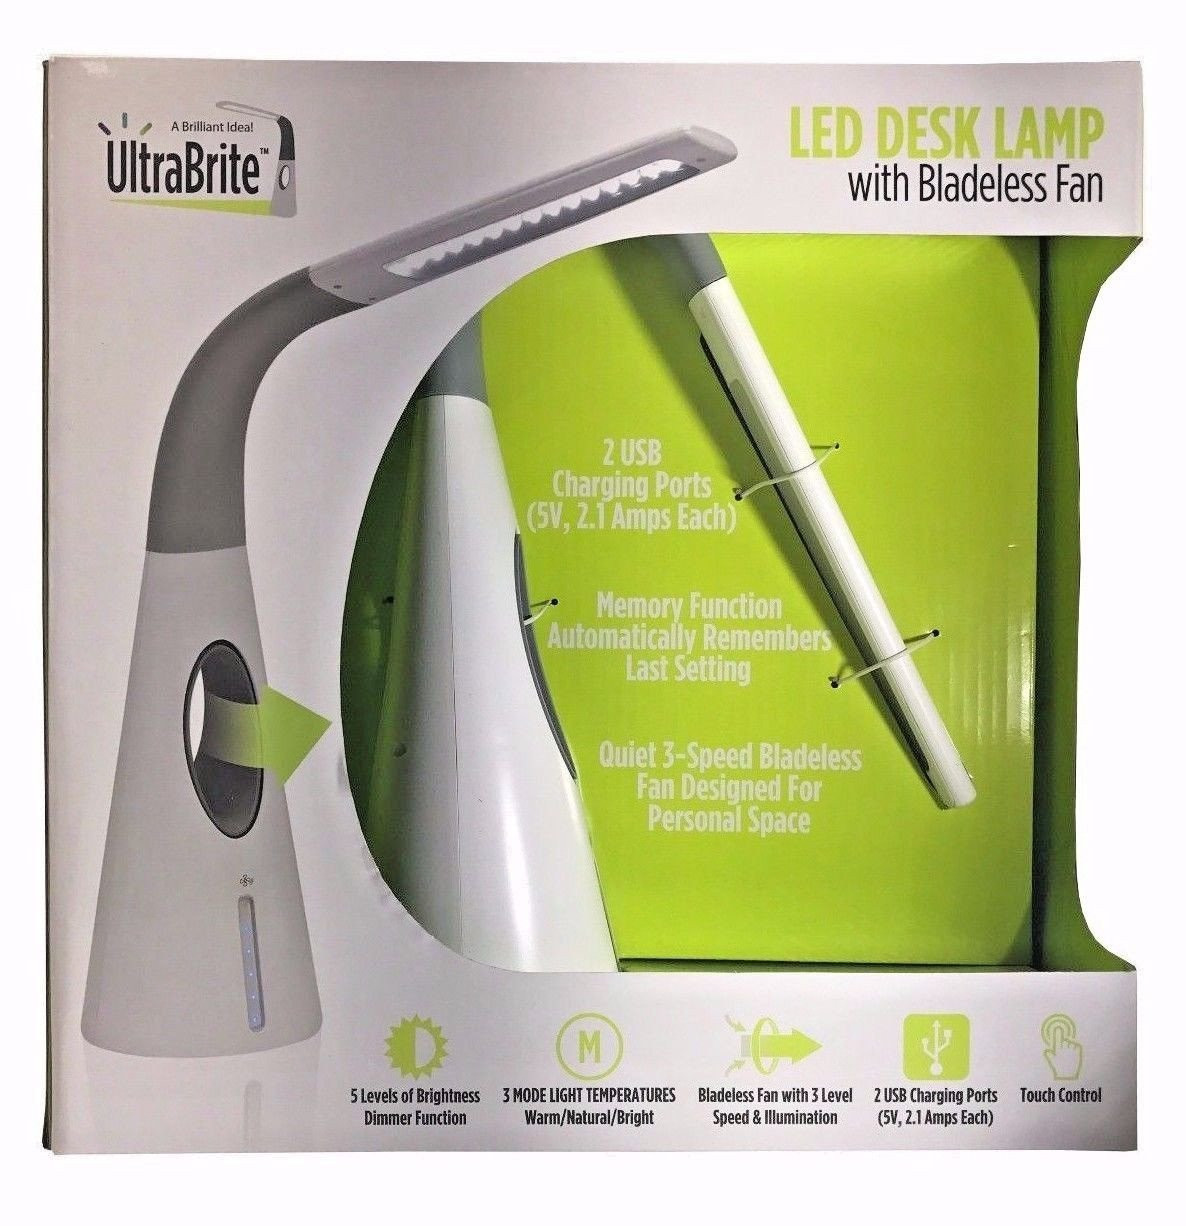 Best ideas about Ultrabrite Led Desk Lamp With Bladeless Fan . Save or Pin UltraBrite LED Desk Lamp with Bladeless Fan 2 USB Charging Now.